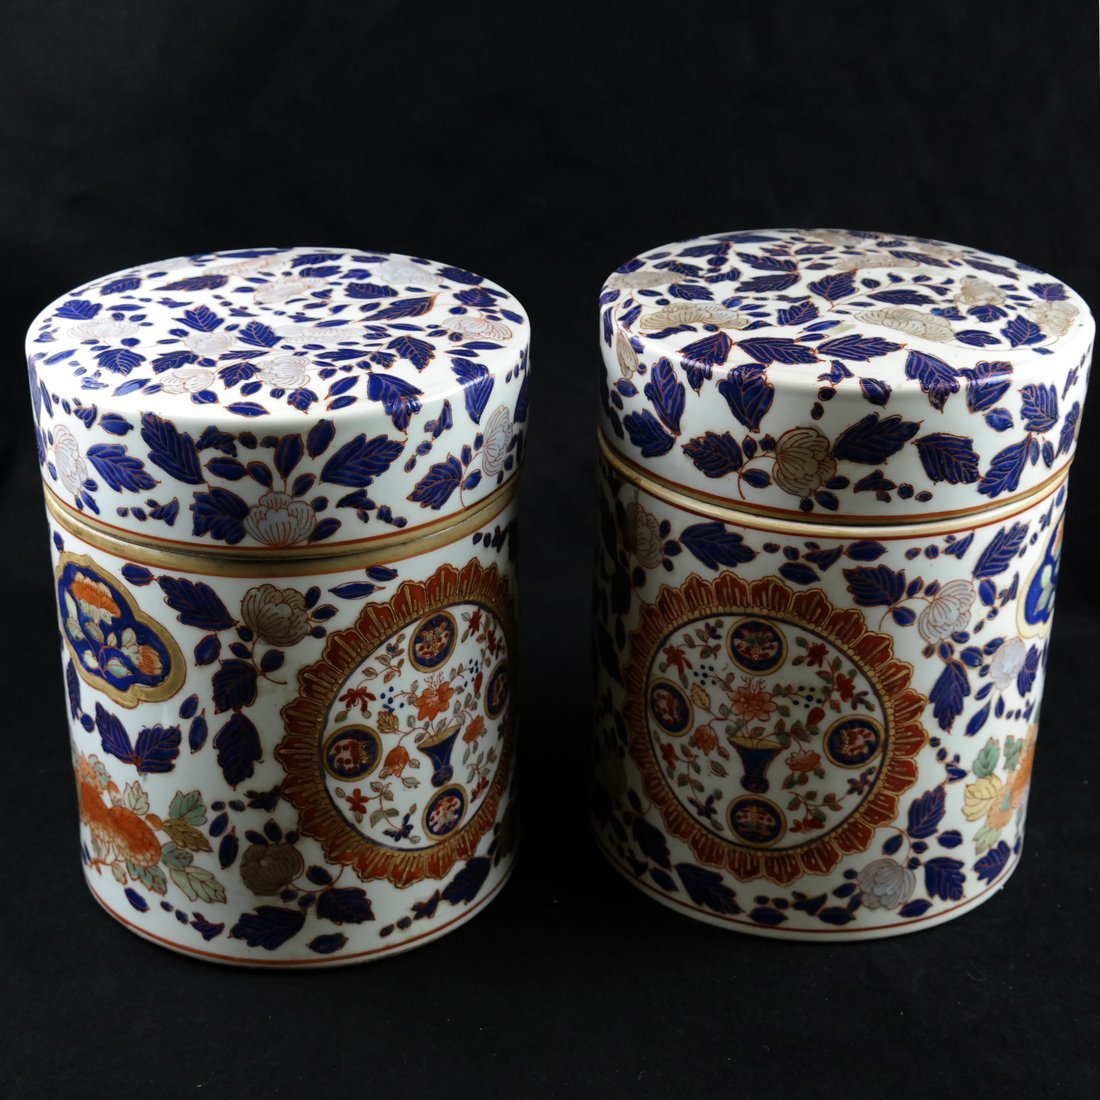 Pair of Chinese Porcelain Canisters